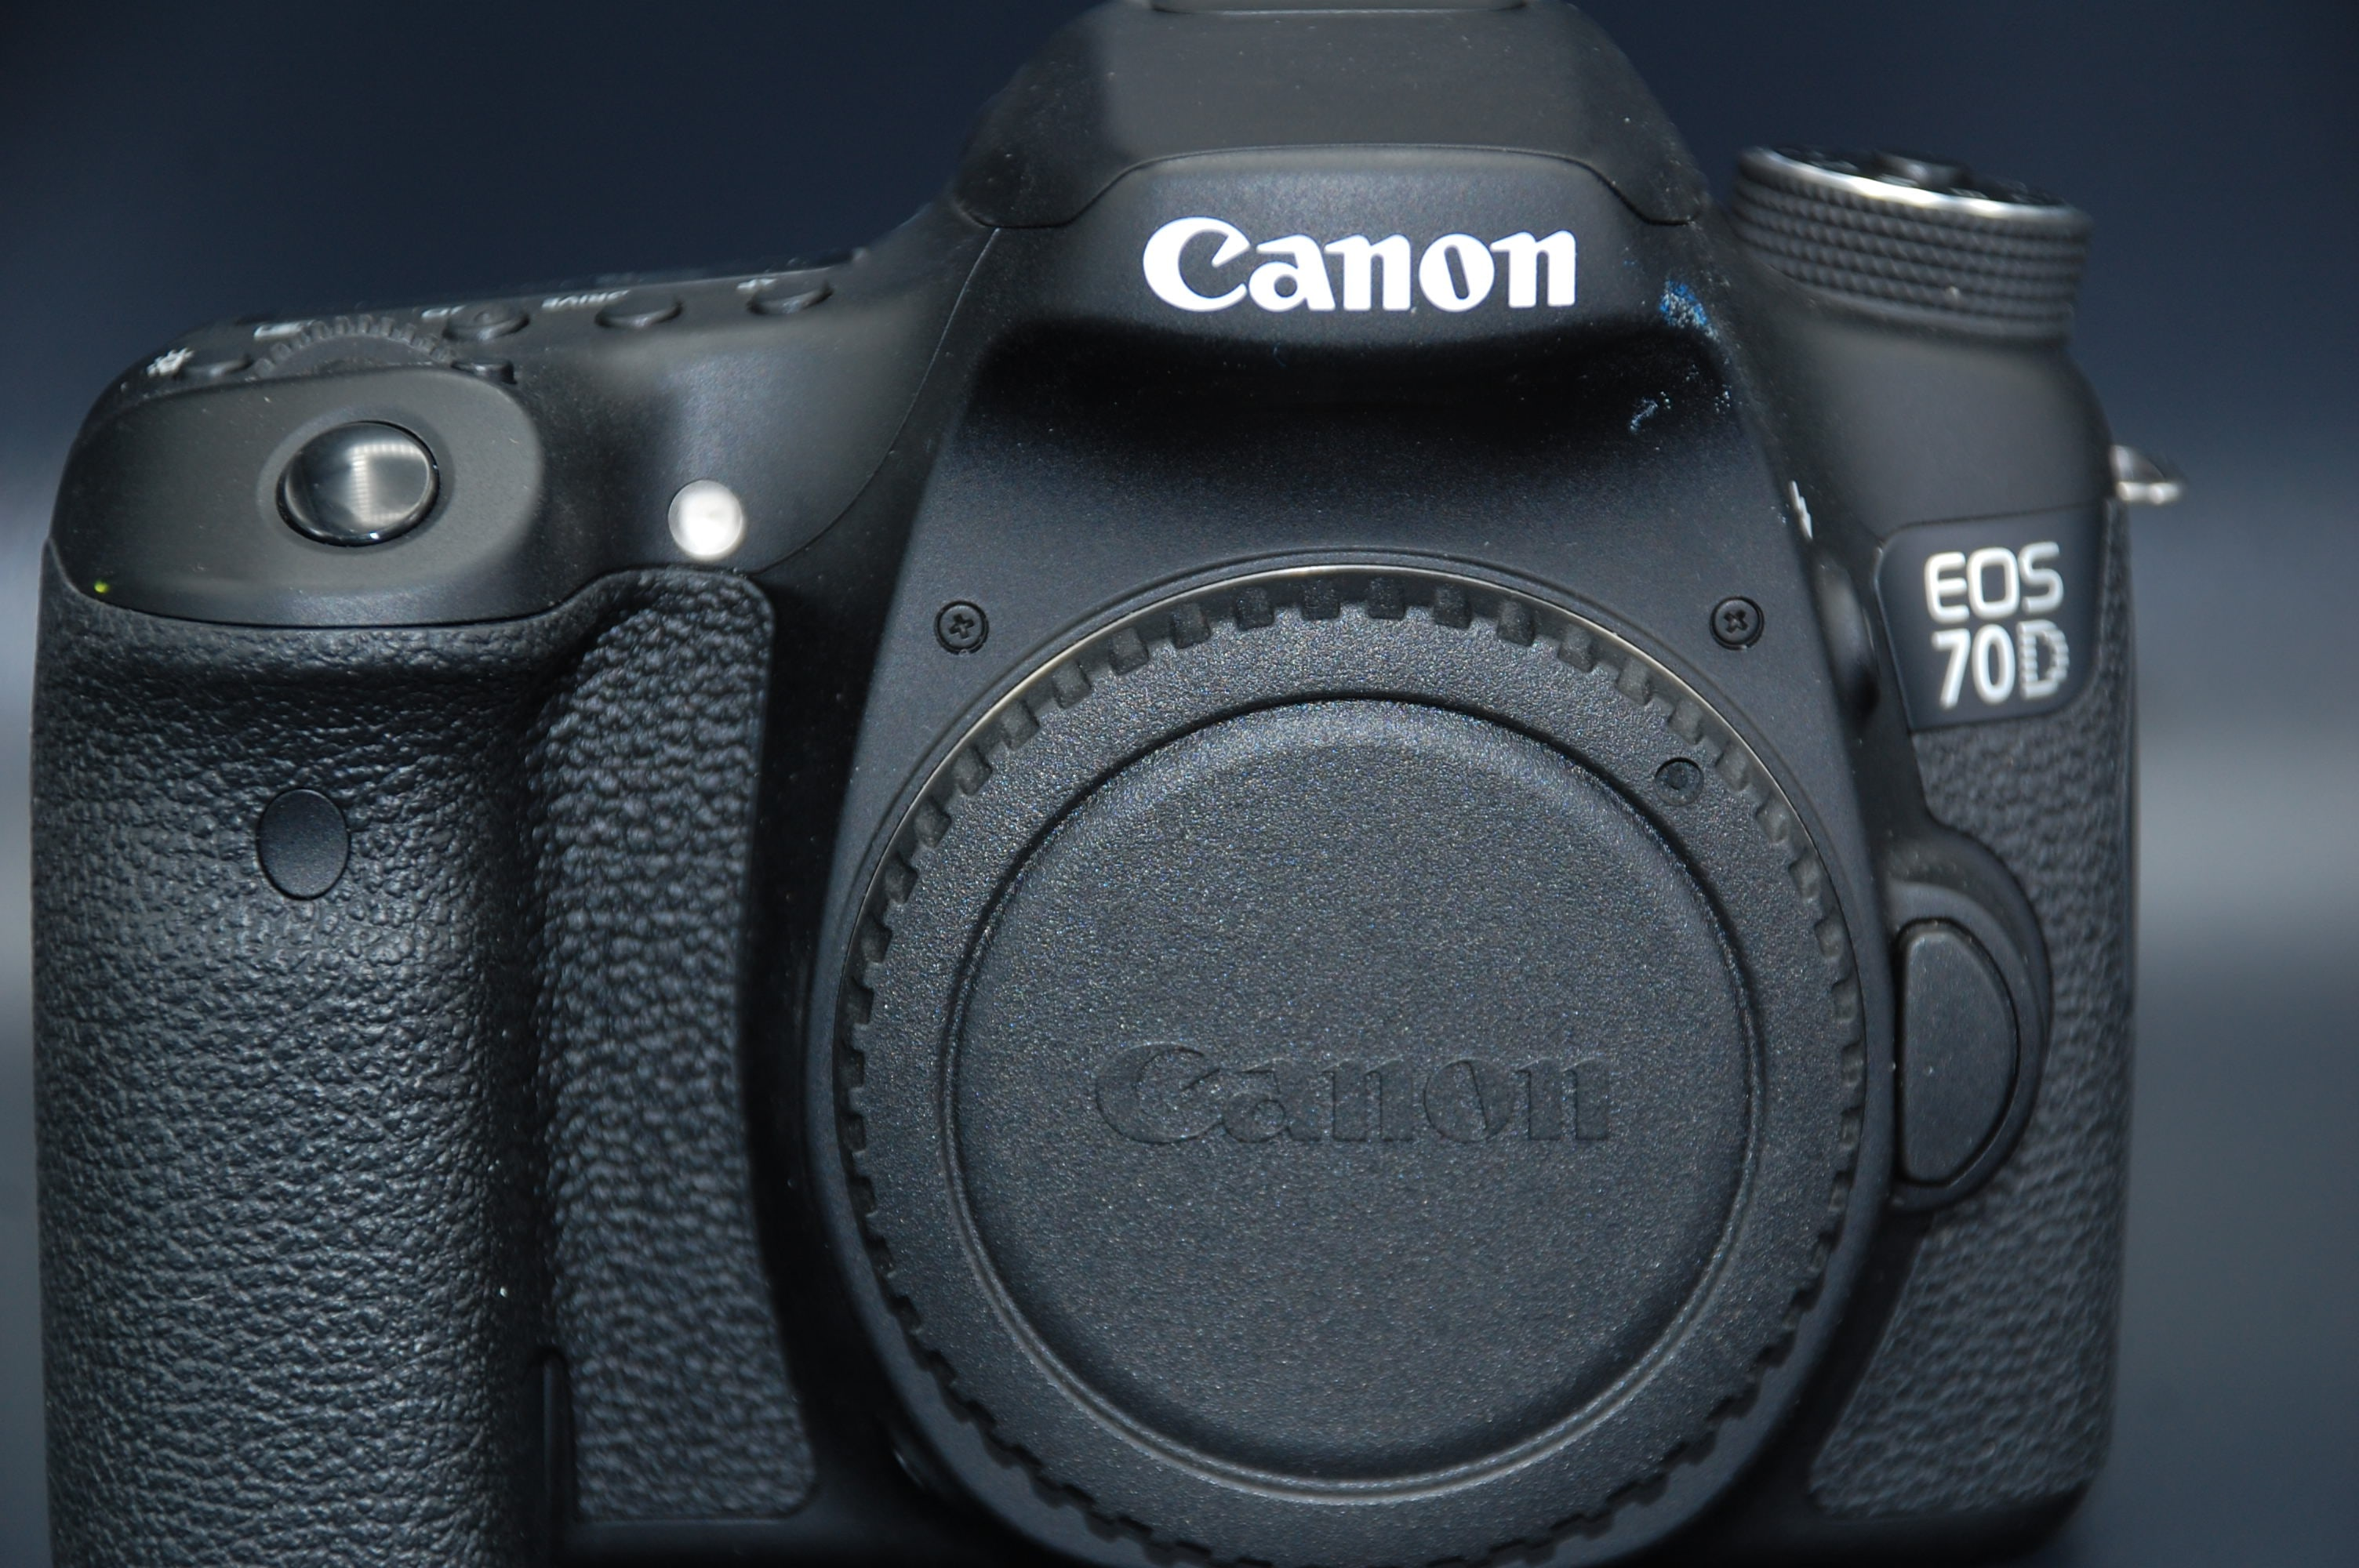 Canon EOS 70D used